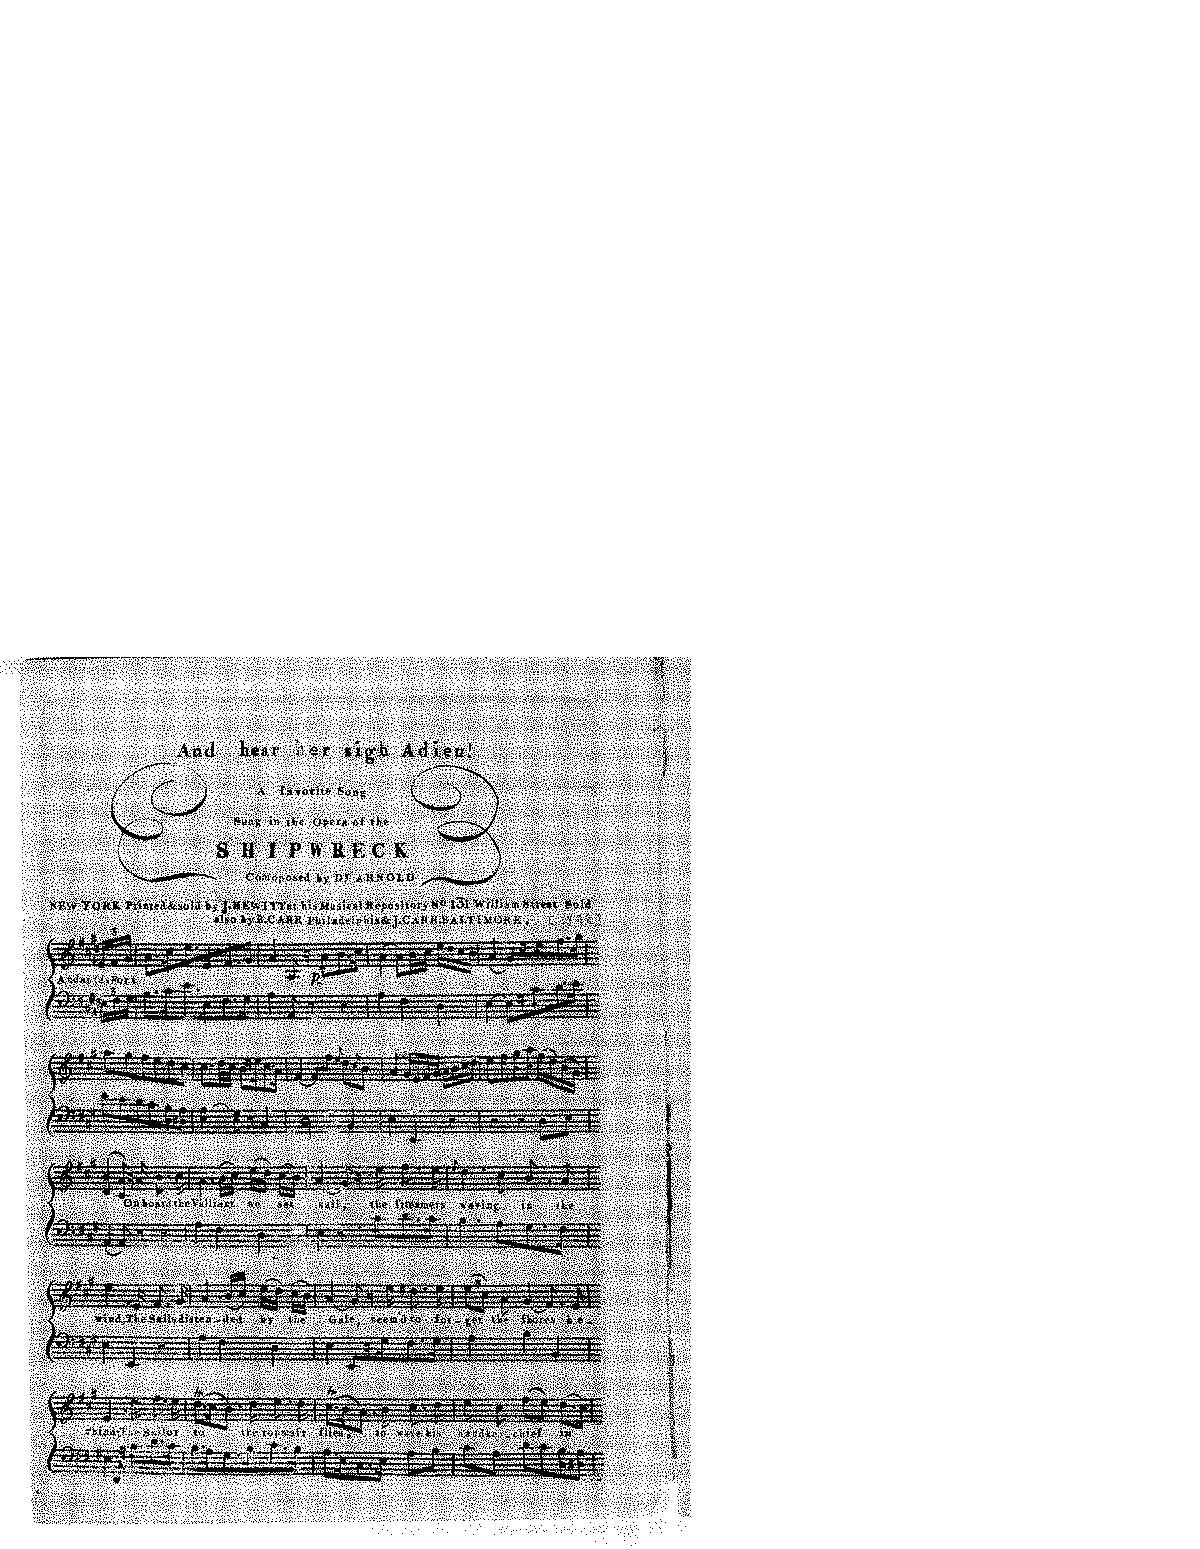 PMLP146684-s arnold song from shipwreck.pdf